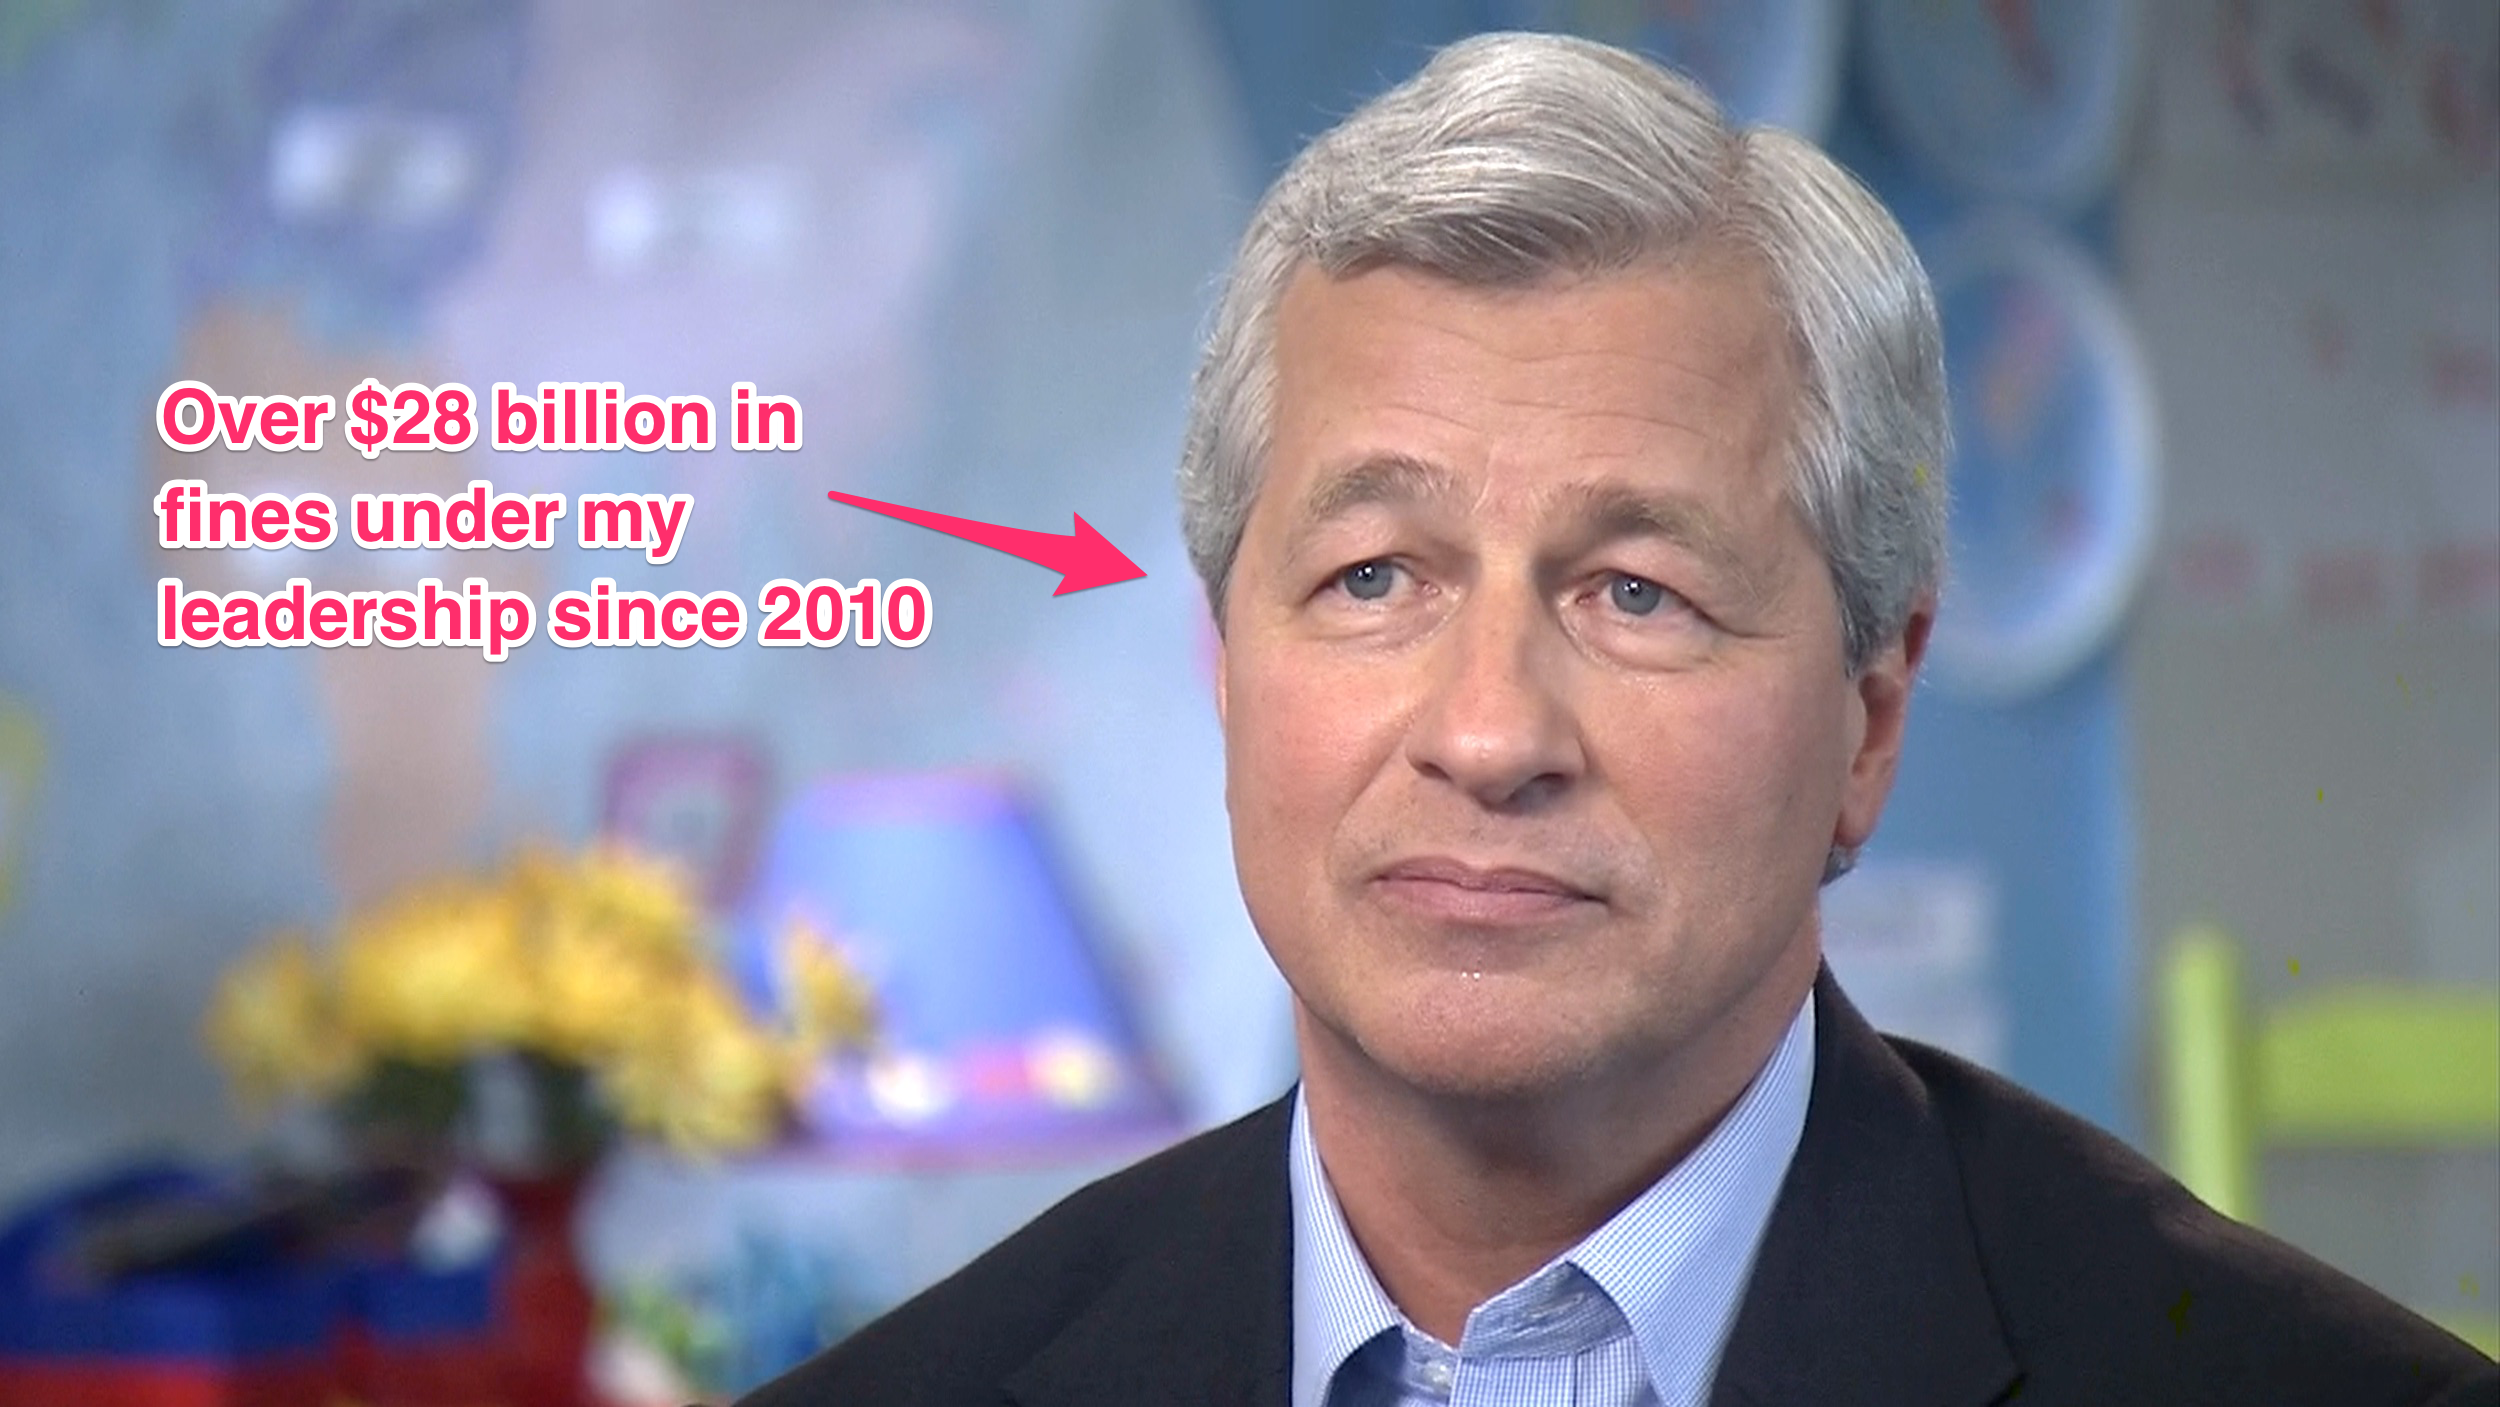 2D274905904491-today-jamie-dimon-140521-02.png